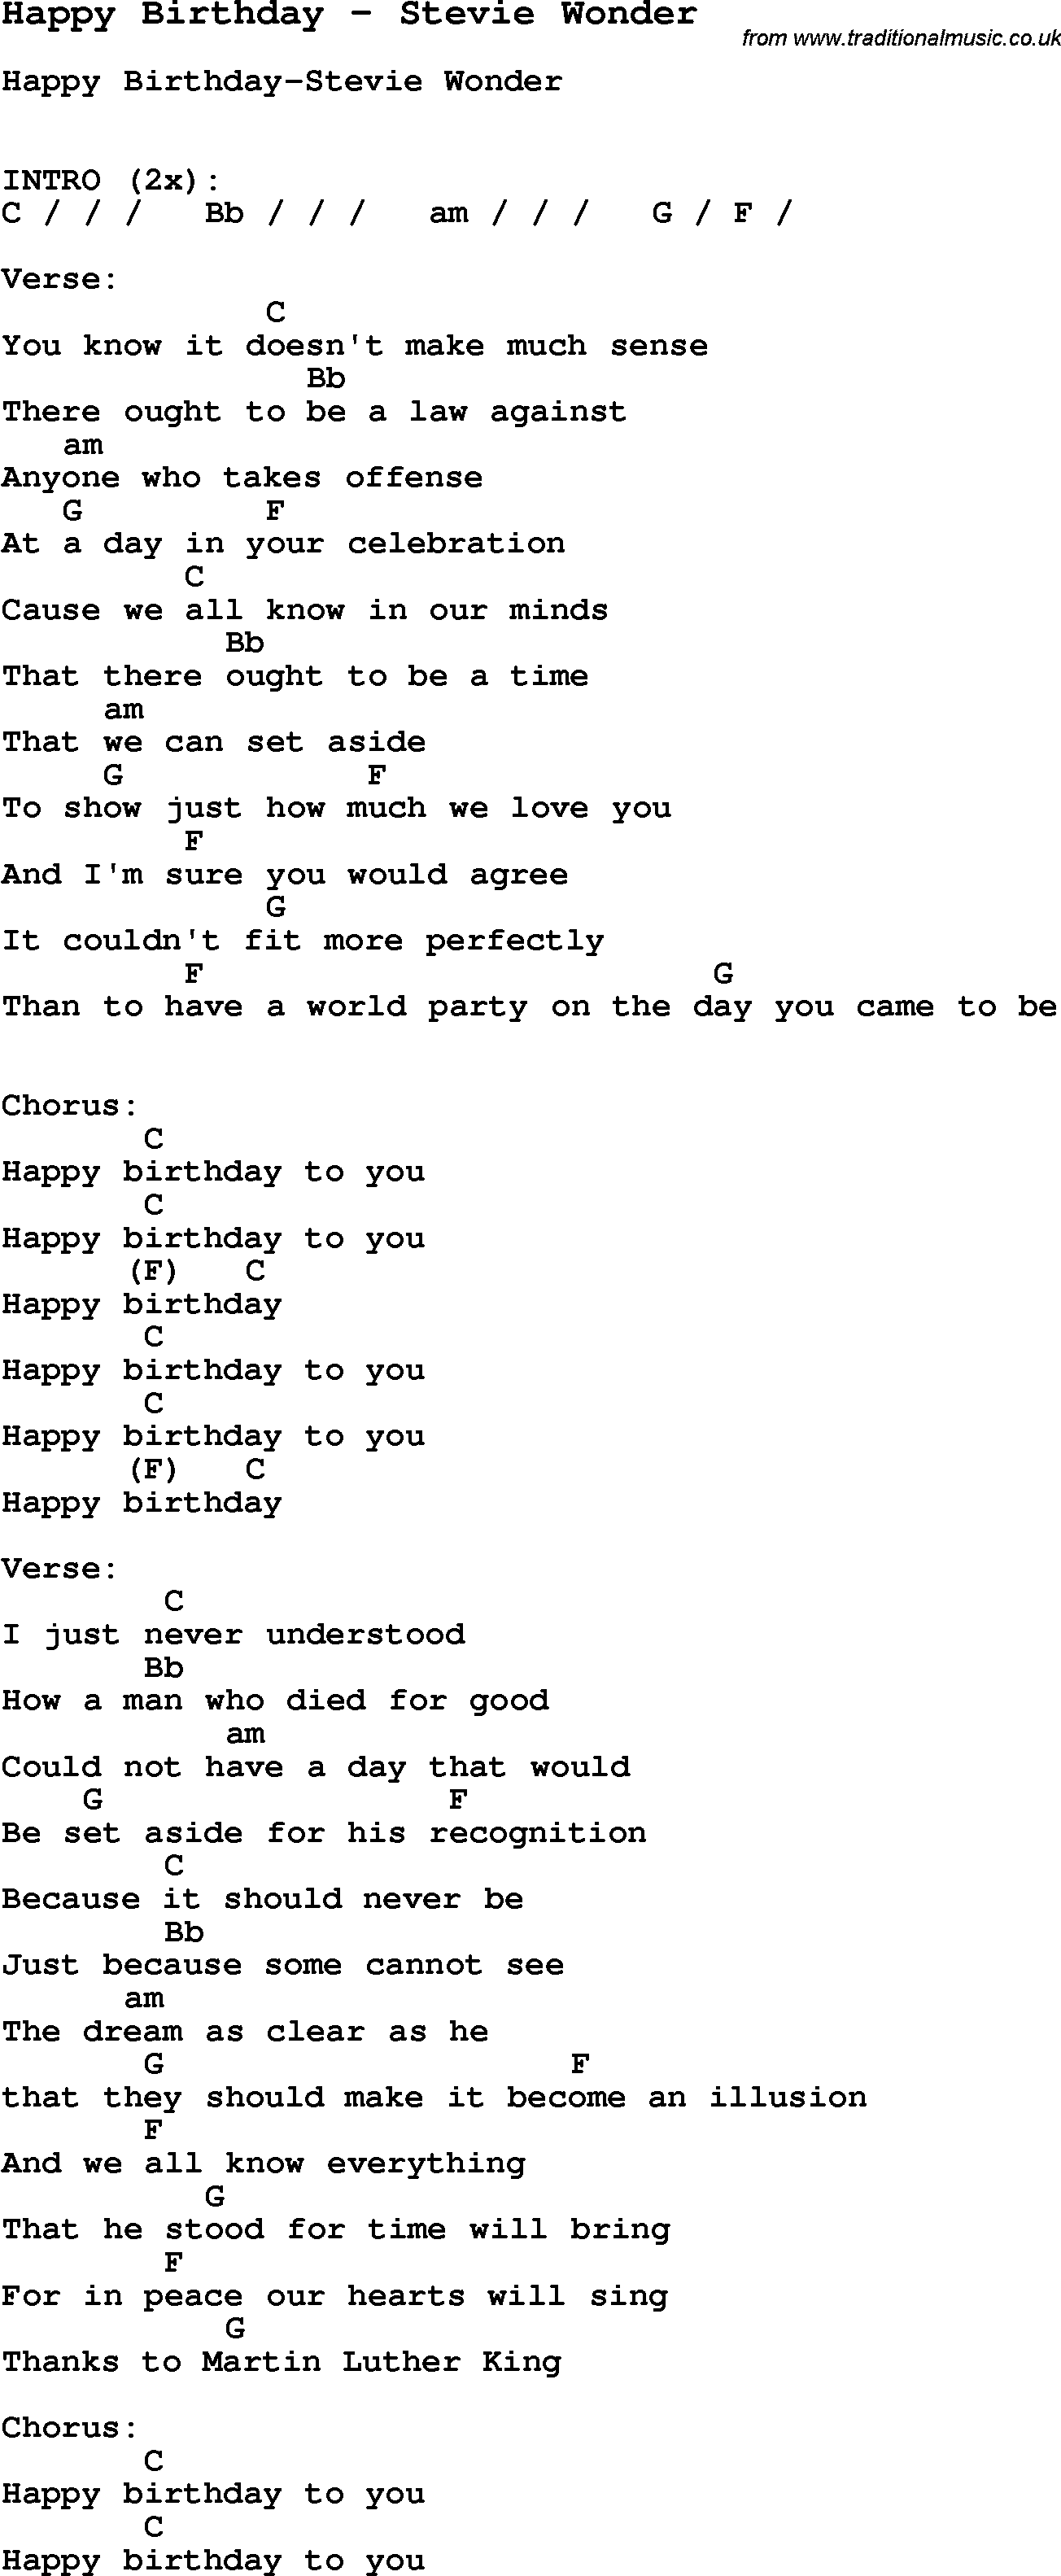 Song Happy Birthday by Stevie Wonder, song lyric for vocal performance plus accompaniment chords ...